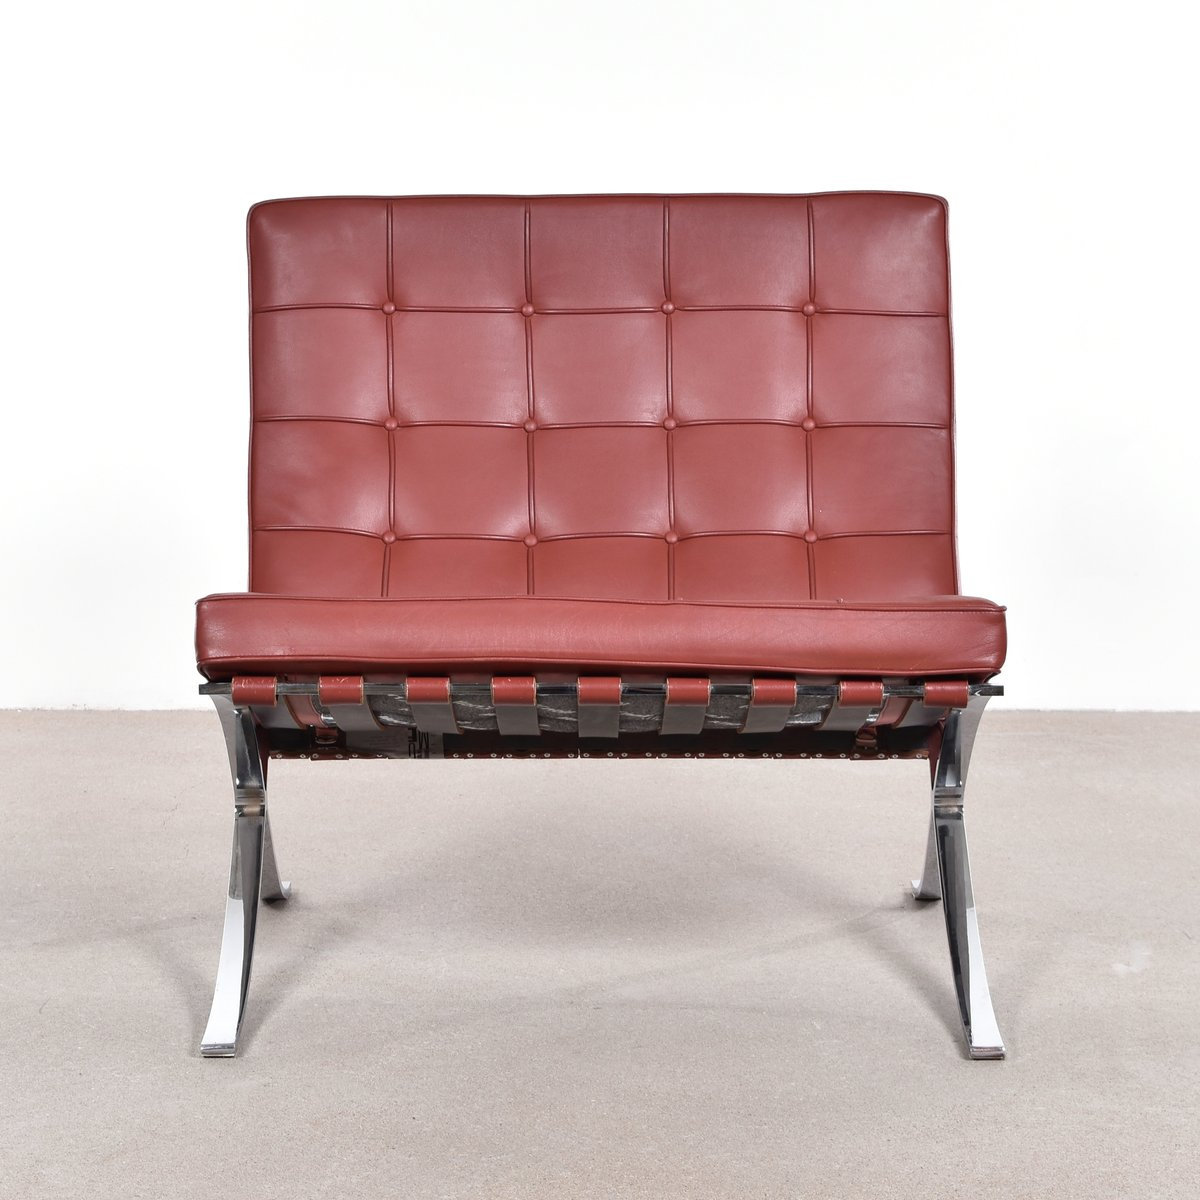 Barcelona Chair By Ludwig Mies Van Der Rohe For Knoll For Sale At Pamono